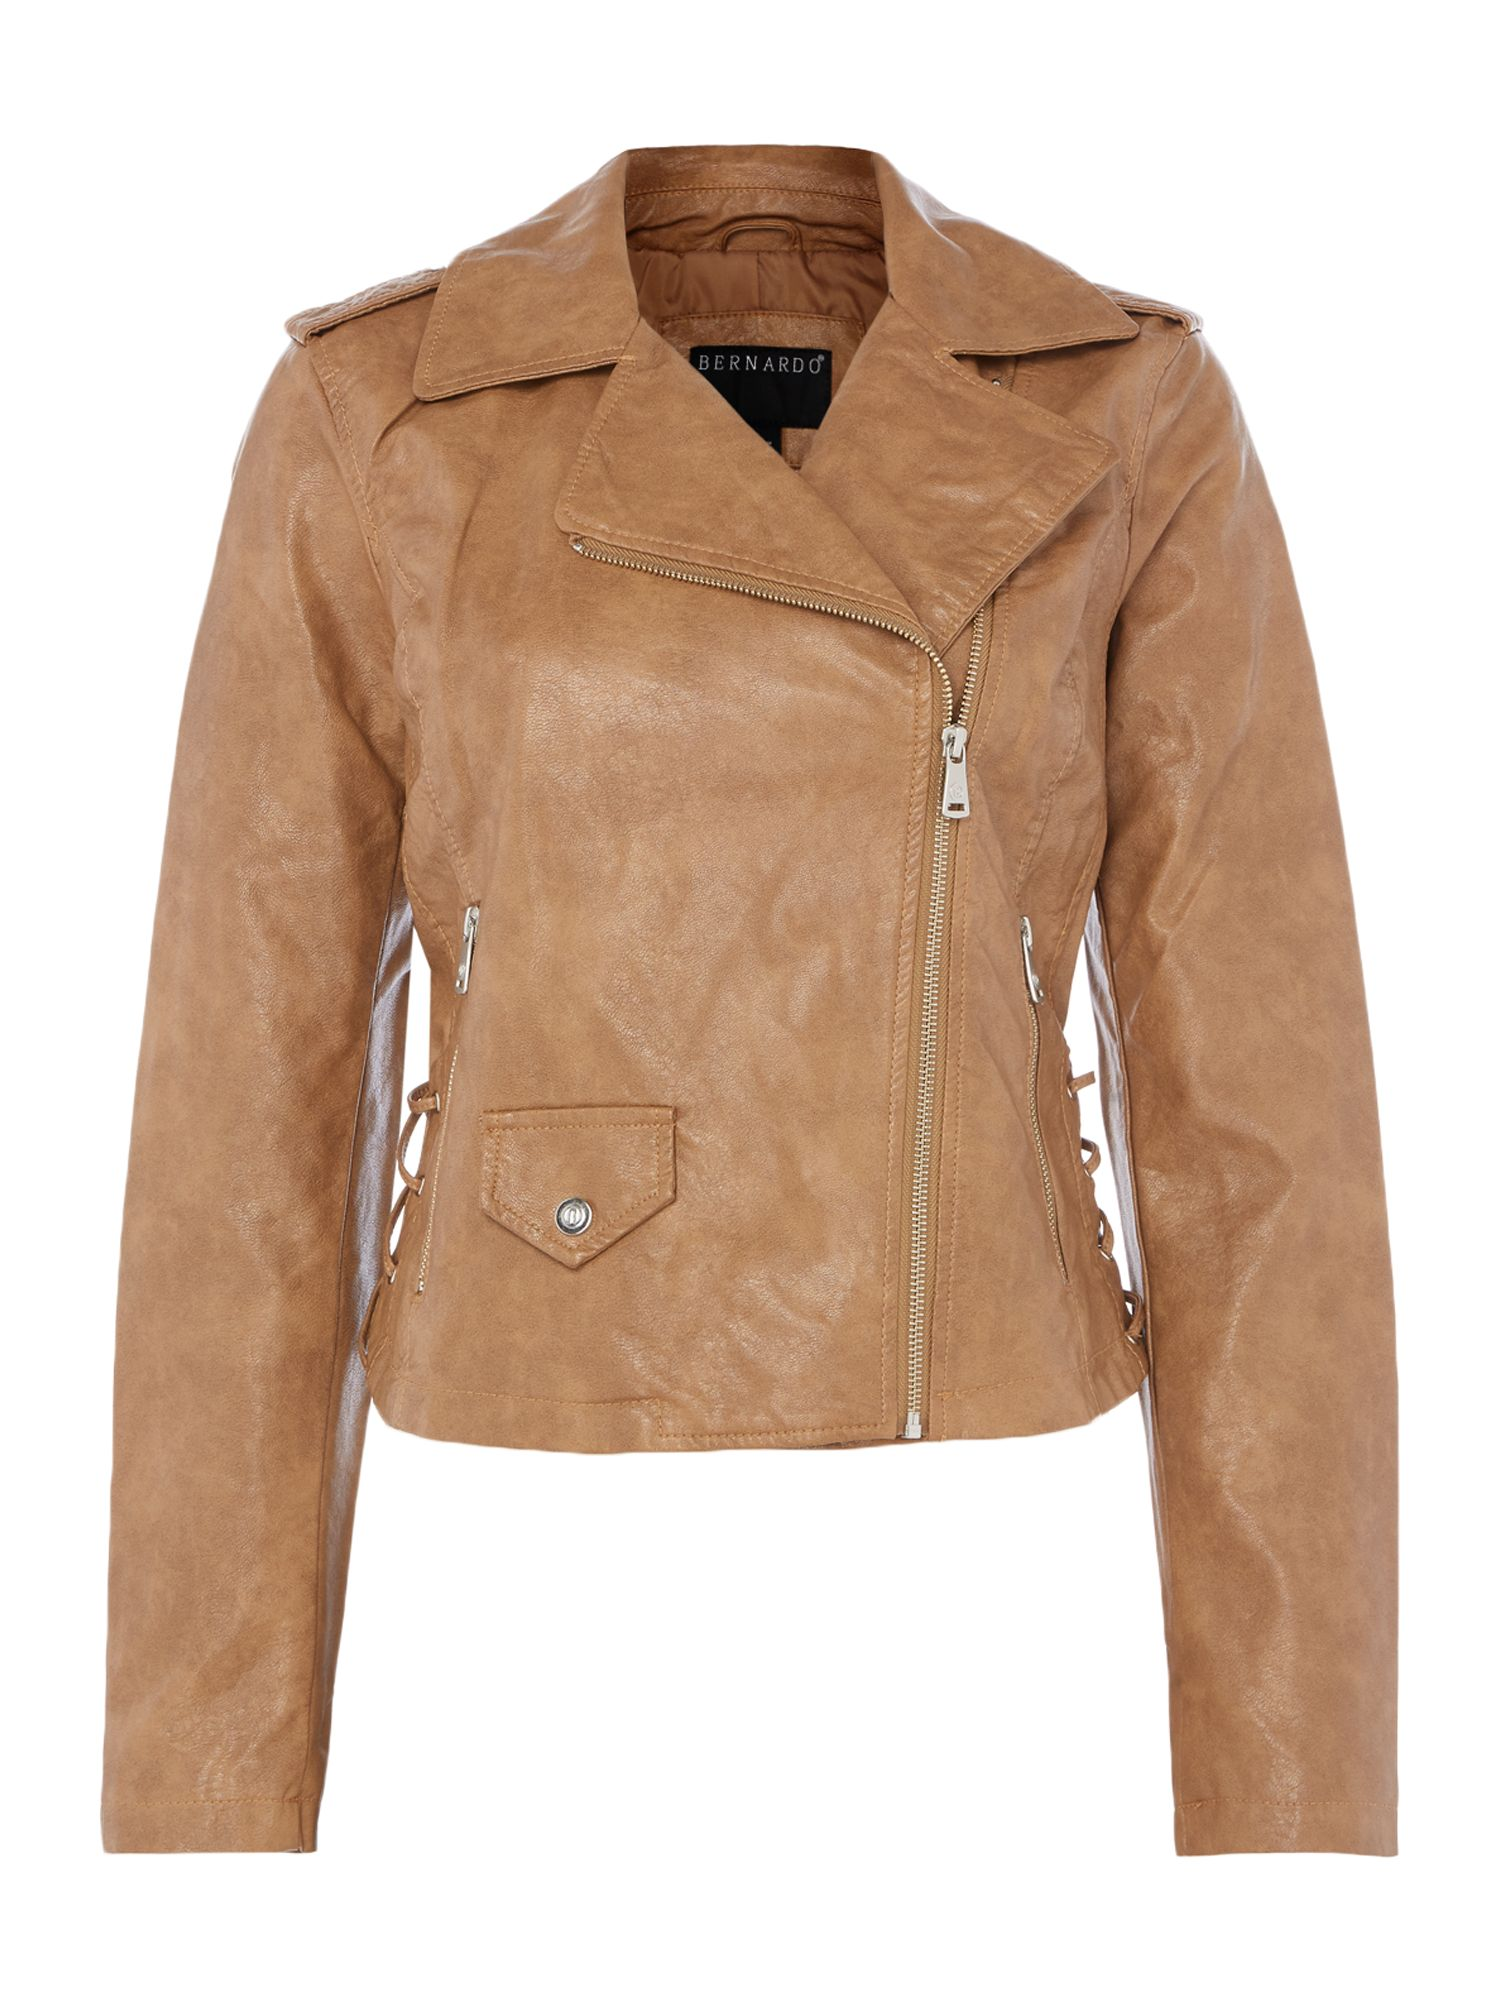 Bernardo Motor jacket with lace up panel, Tan